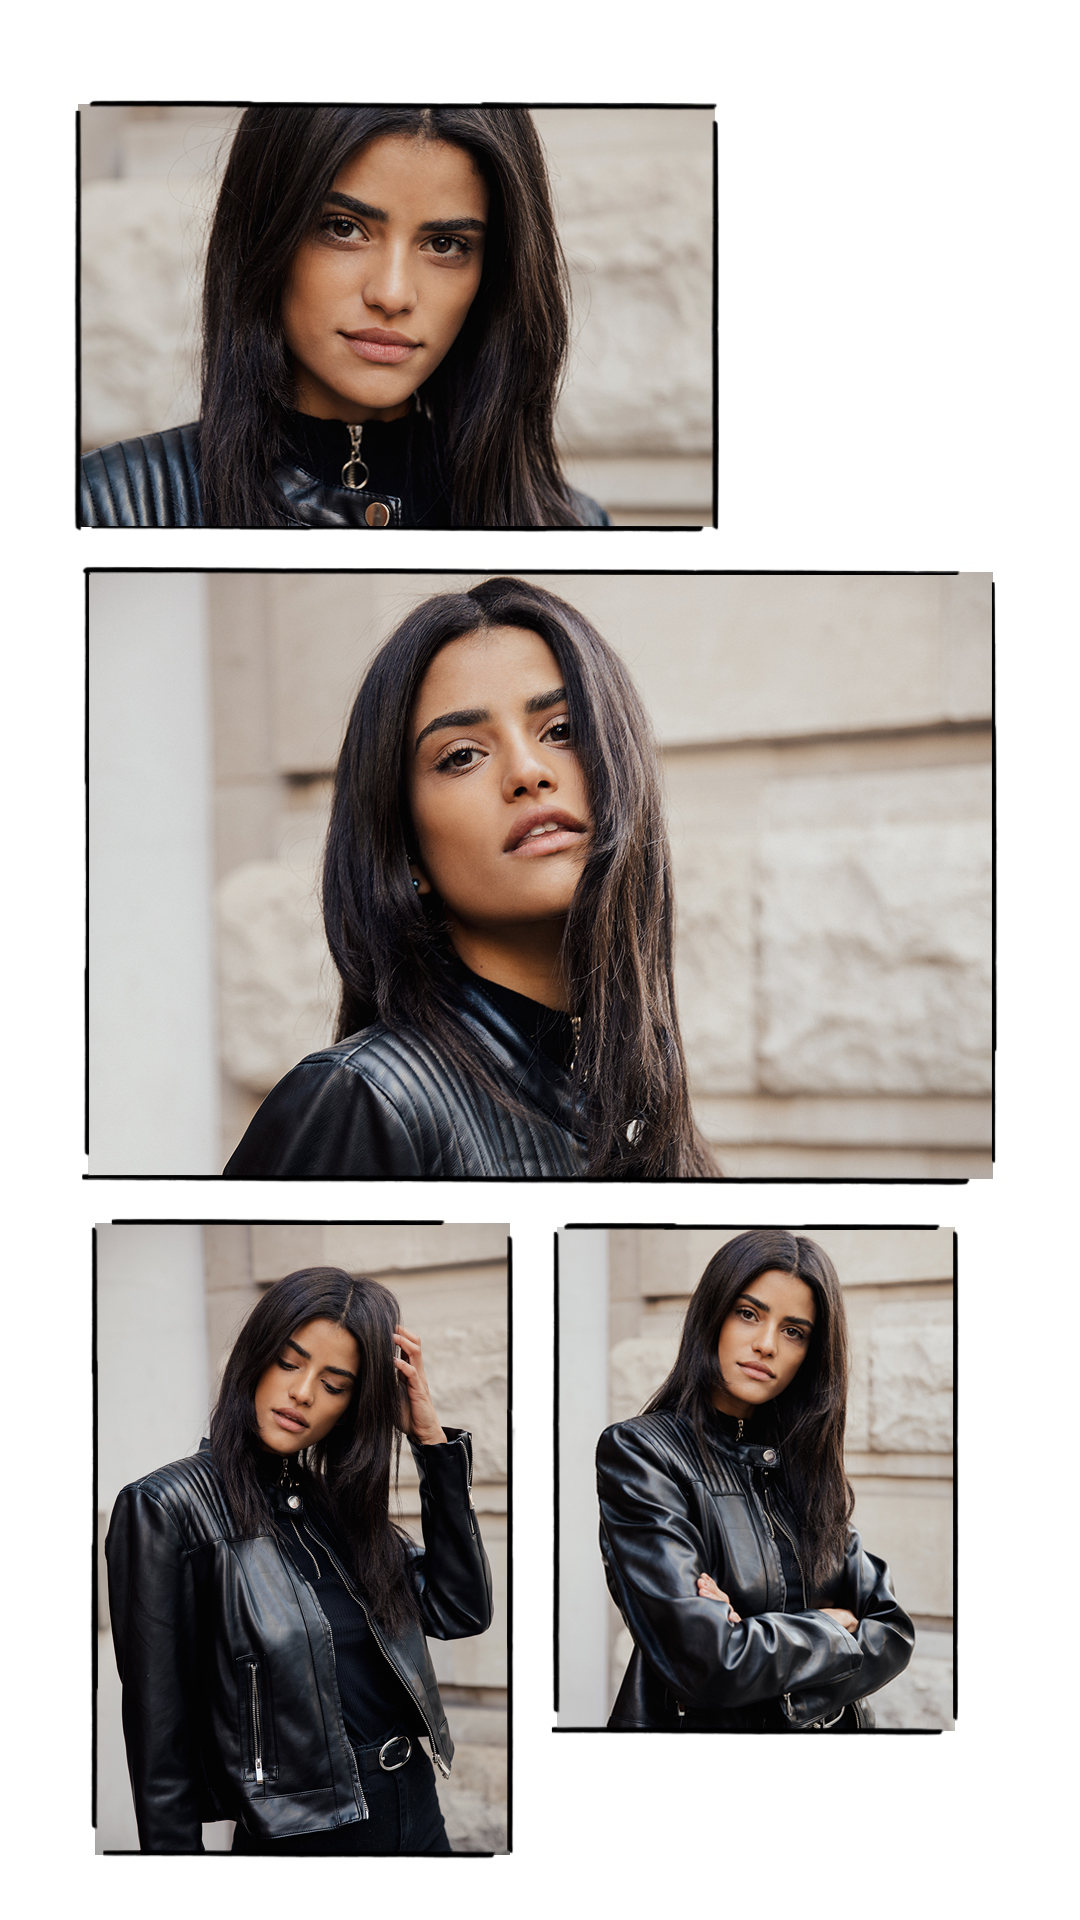 black haired model in London wearing a leather jacket